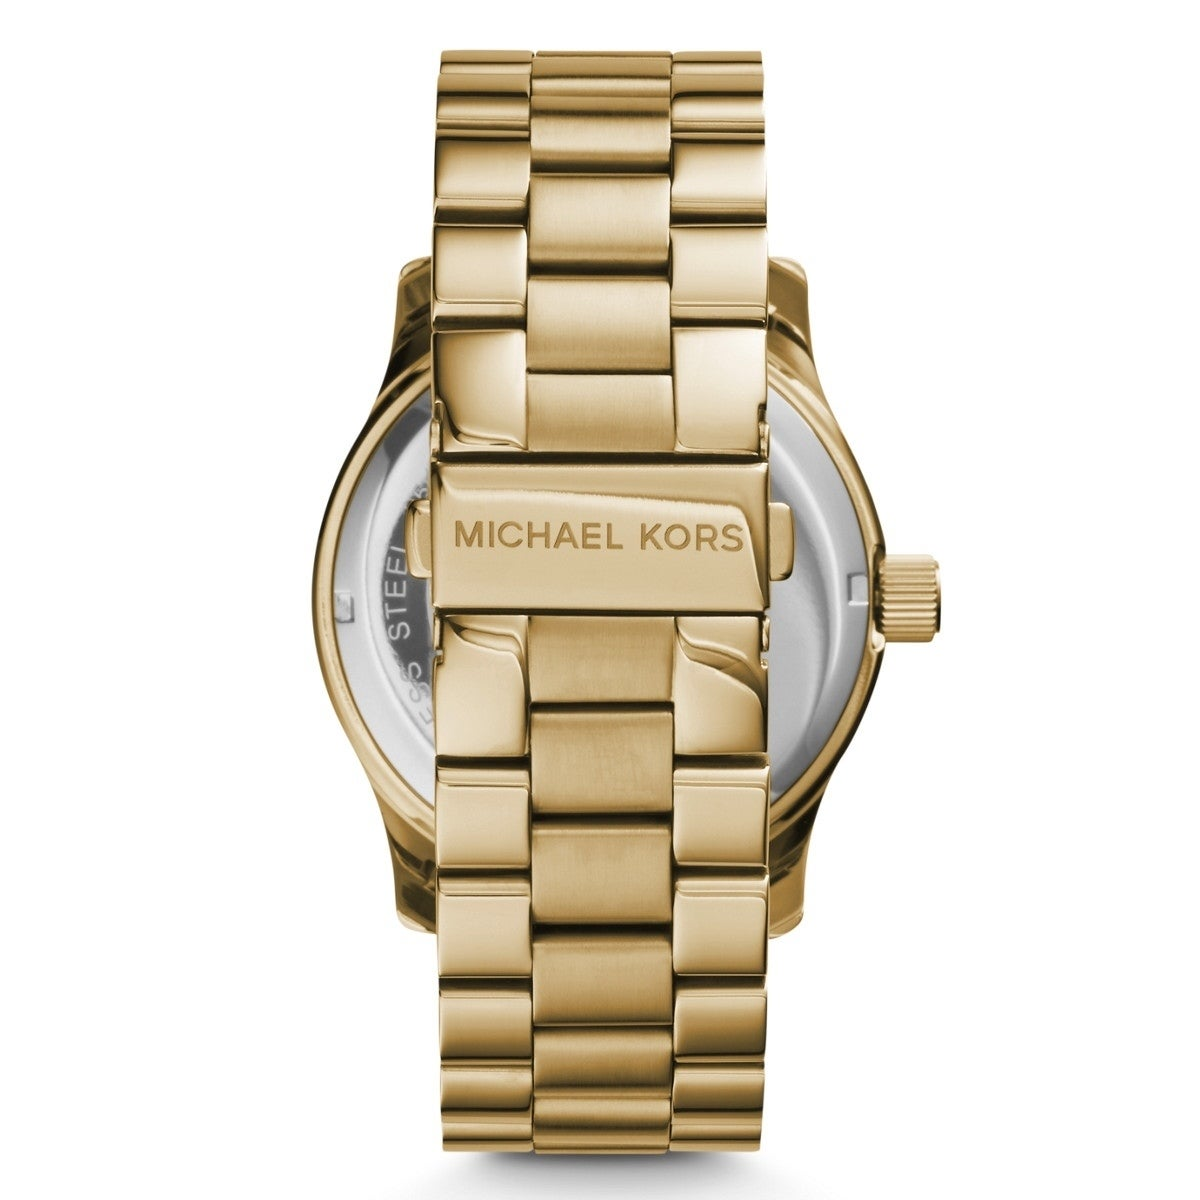 ae587d122922 Shop Michael Kors Women s MK5706 Goldtone Stainless Steel Quartz Watch with  Goldtone Dial - Gold - Free Shipping Today - Overstock - 9183502